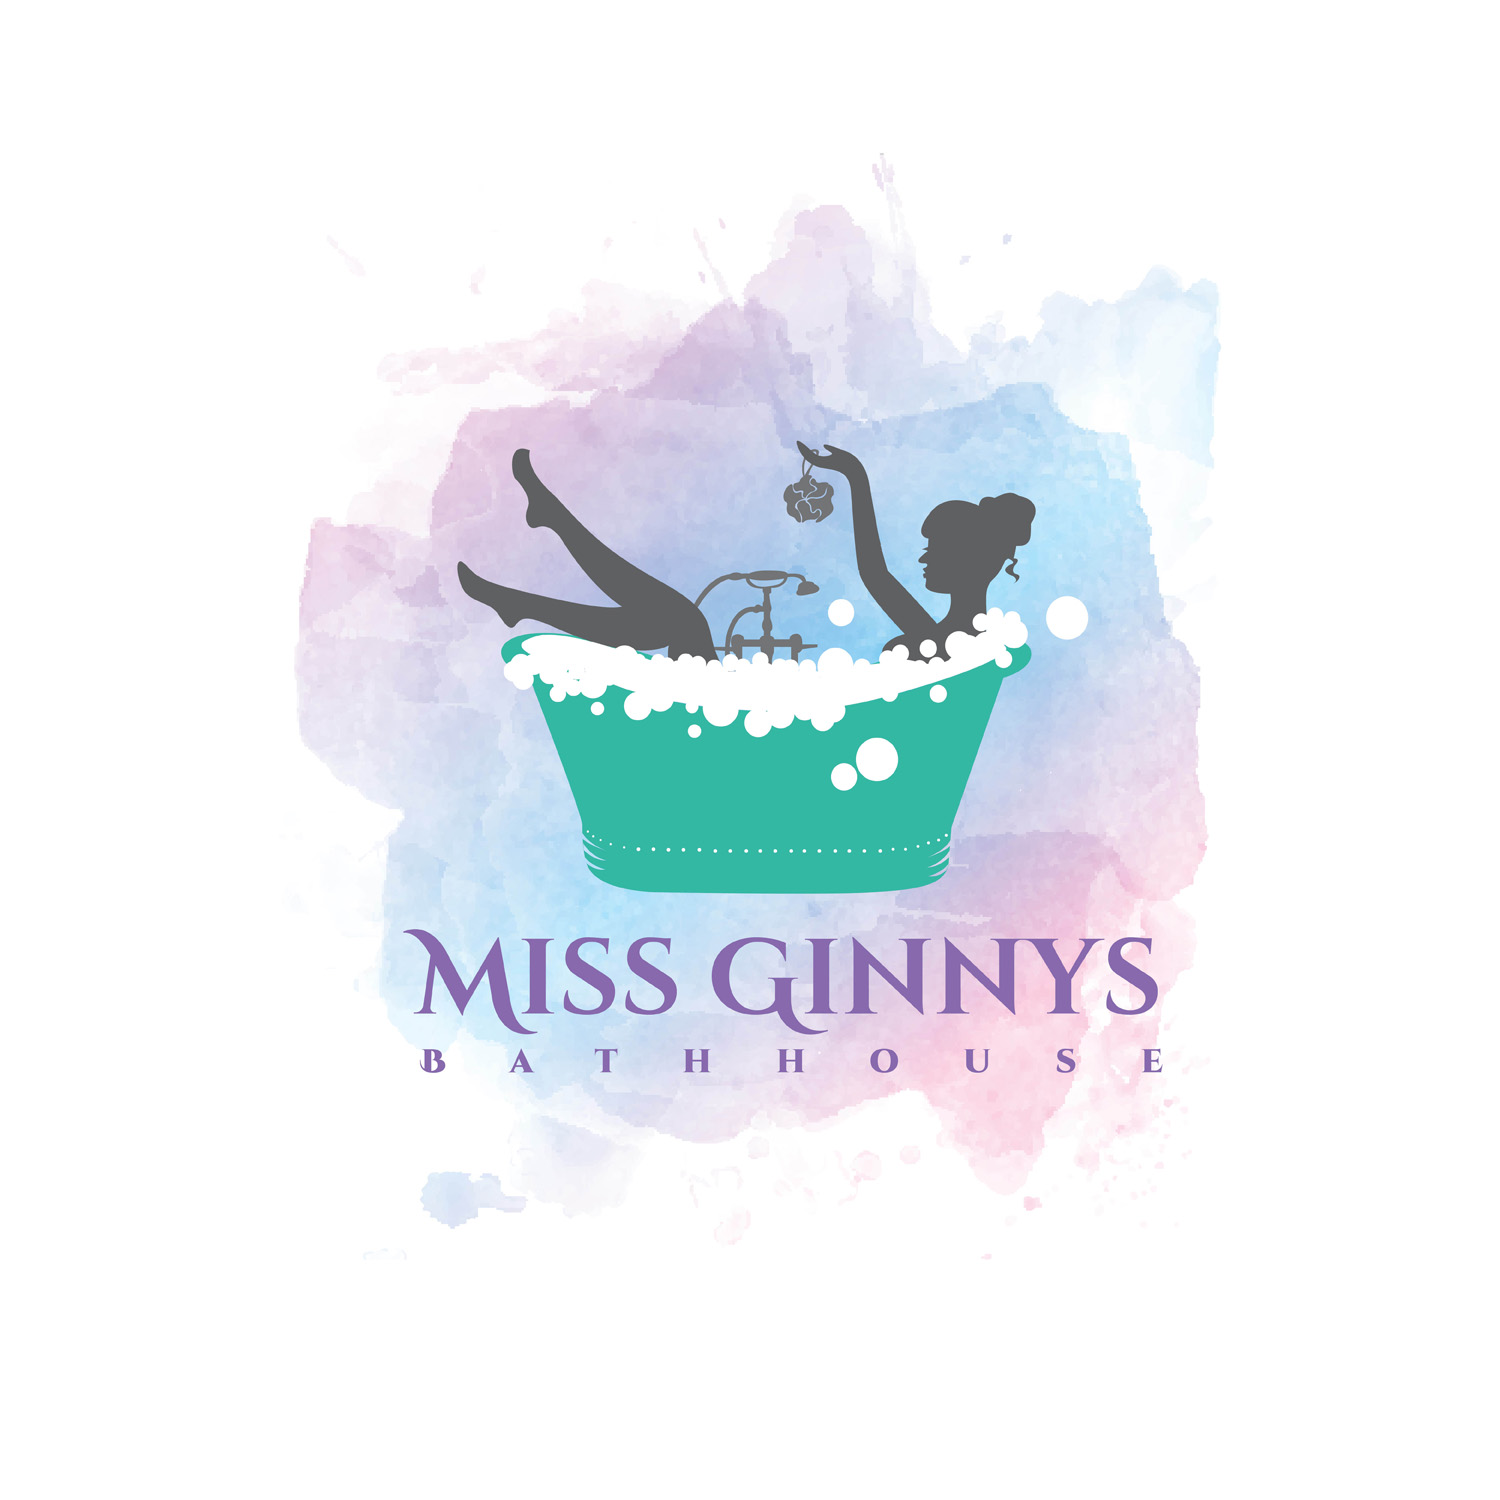 Miss Ginnys Bathhouse Watercolor Logo Design by samanit for a School Golf Team